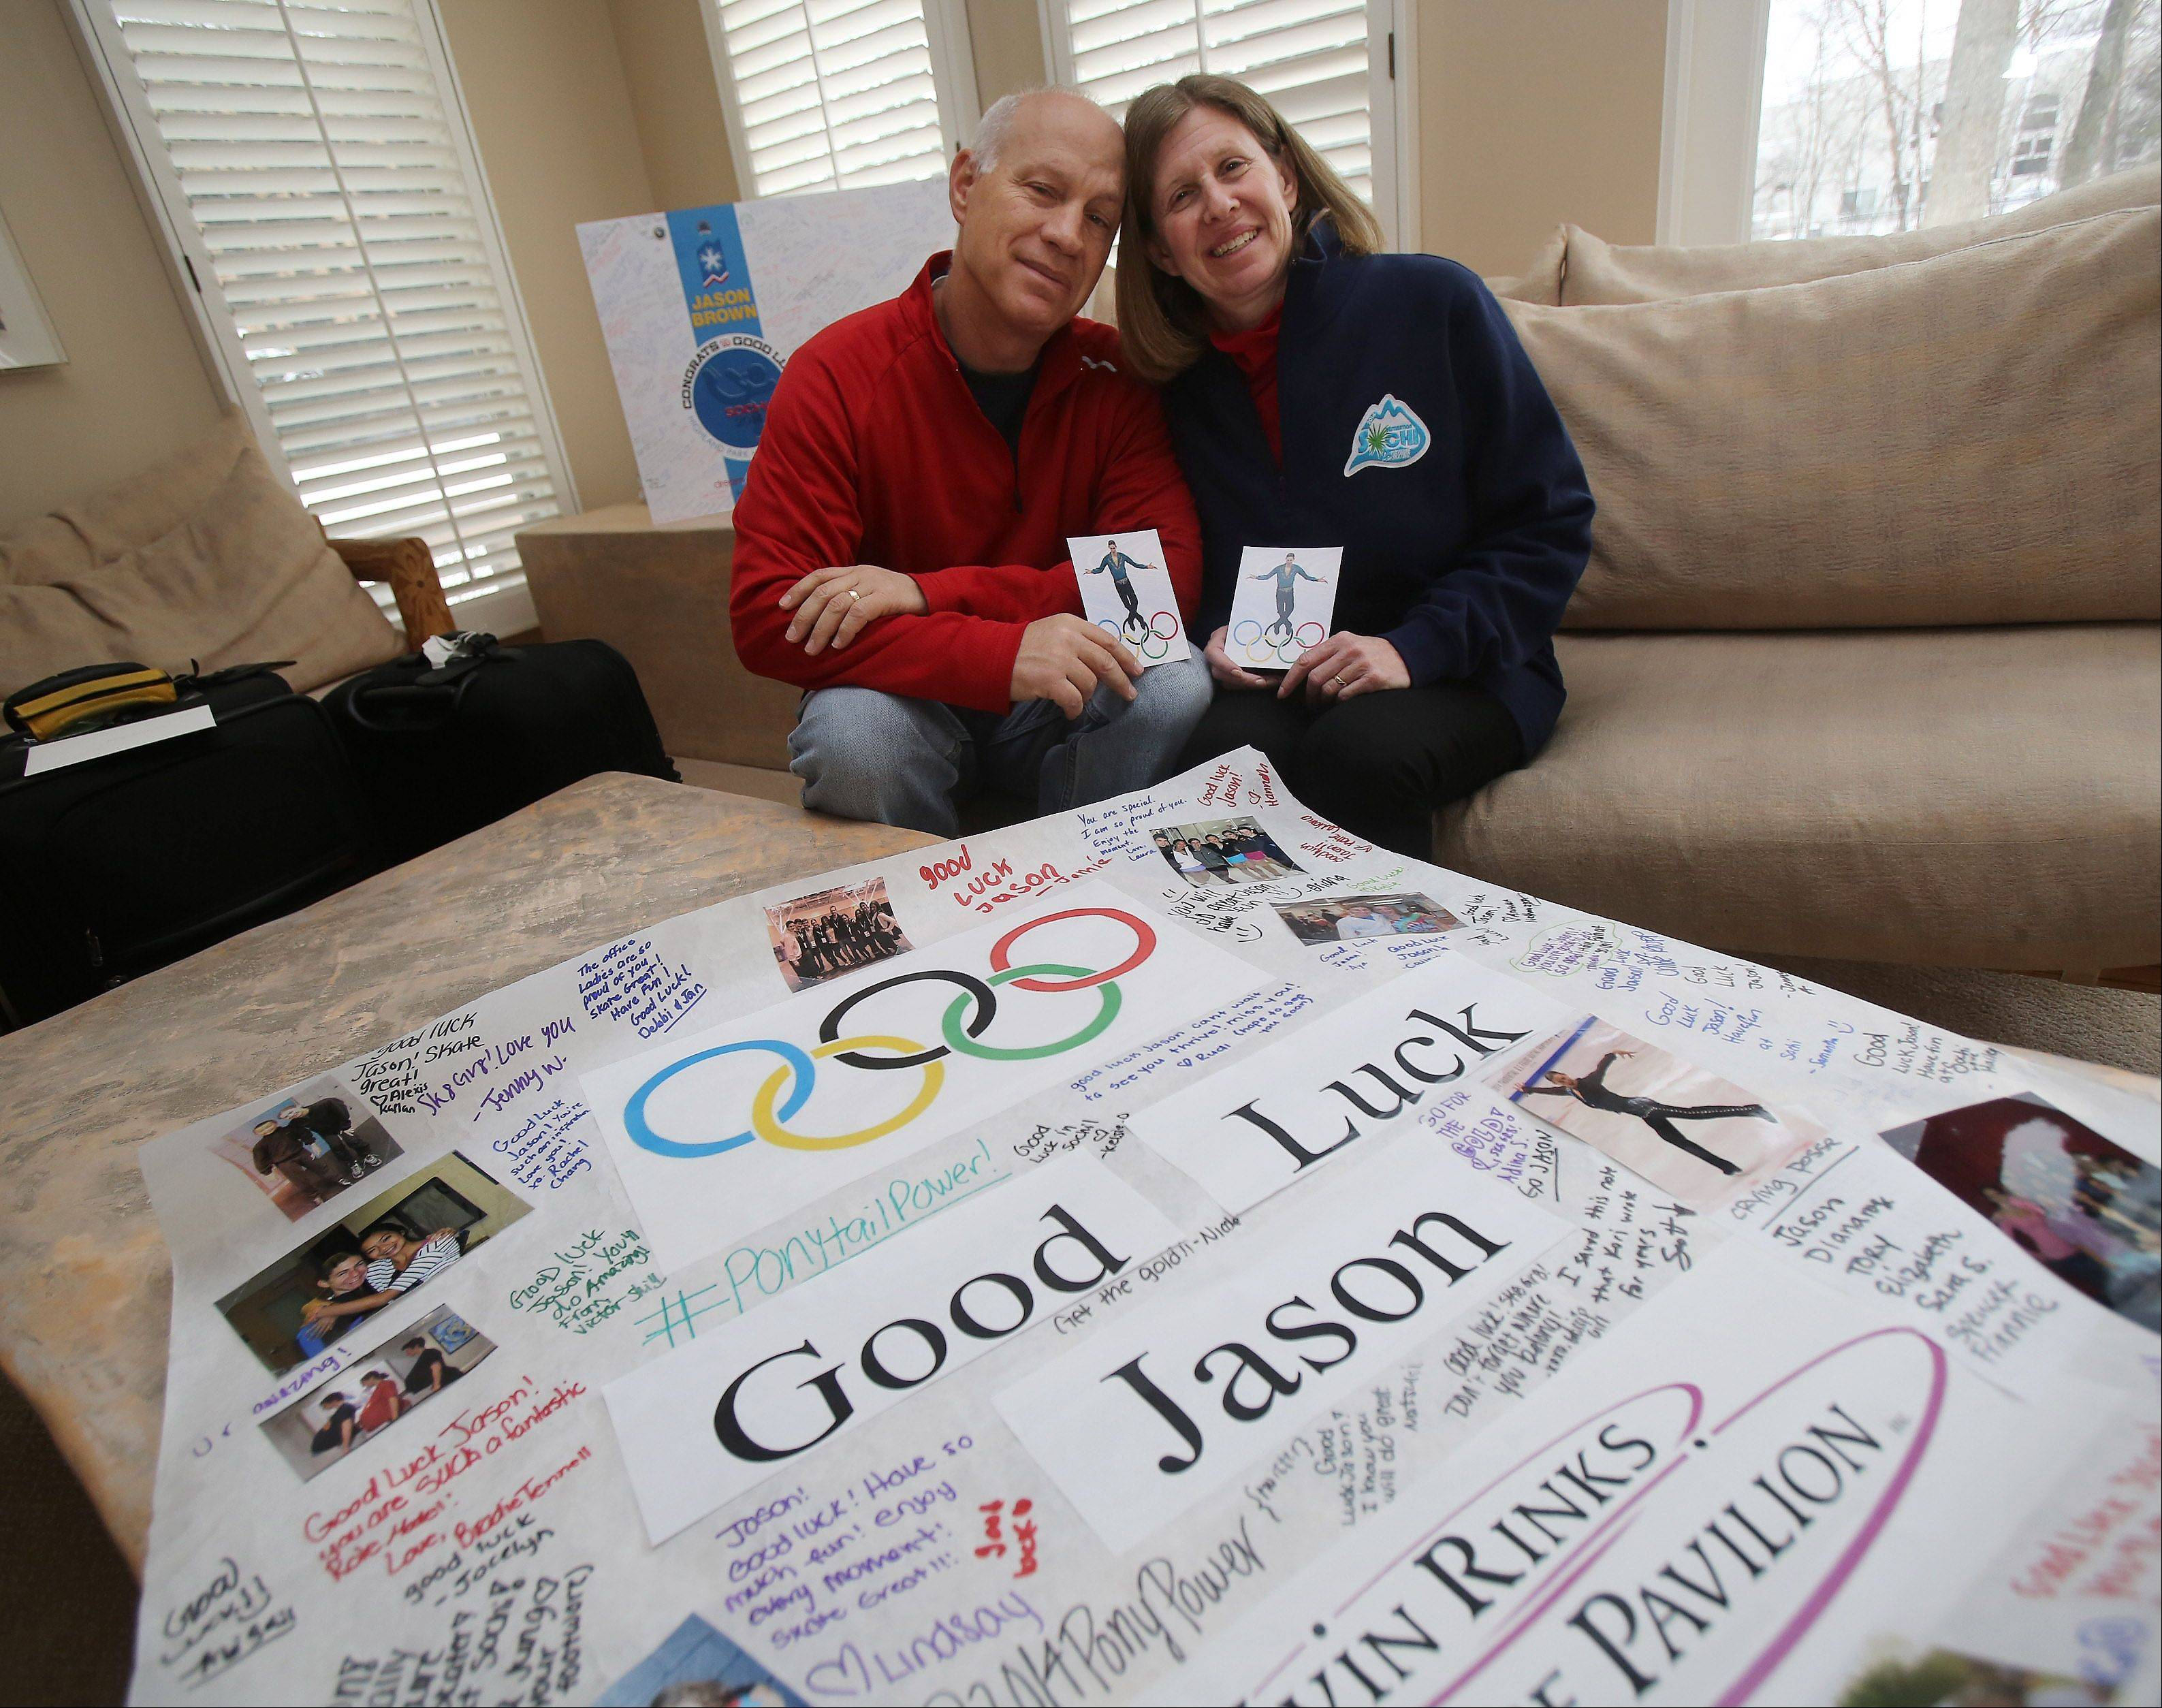 Steve and Marla Brown of Highland Park are heading to Sochi, Russia, to watch their son Jason -- seen at top at the U.S. Figure Skating Championships last month in Boston -- compete in men's figure skating at the Olympics.